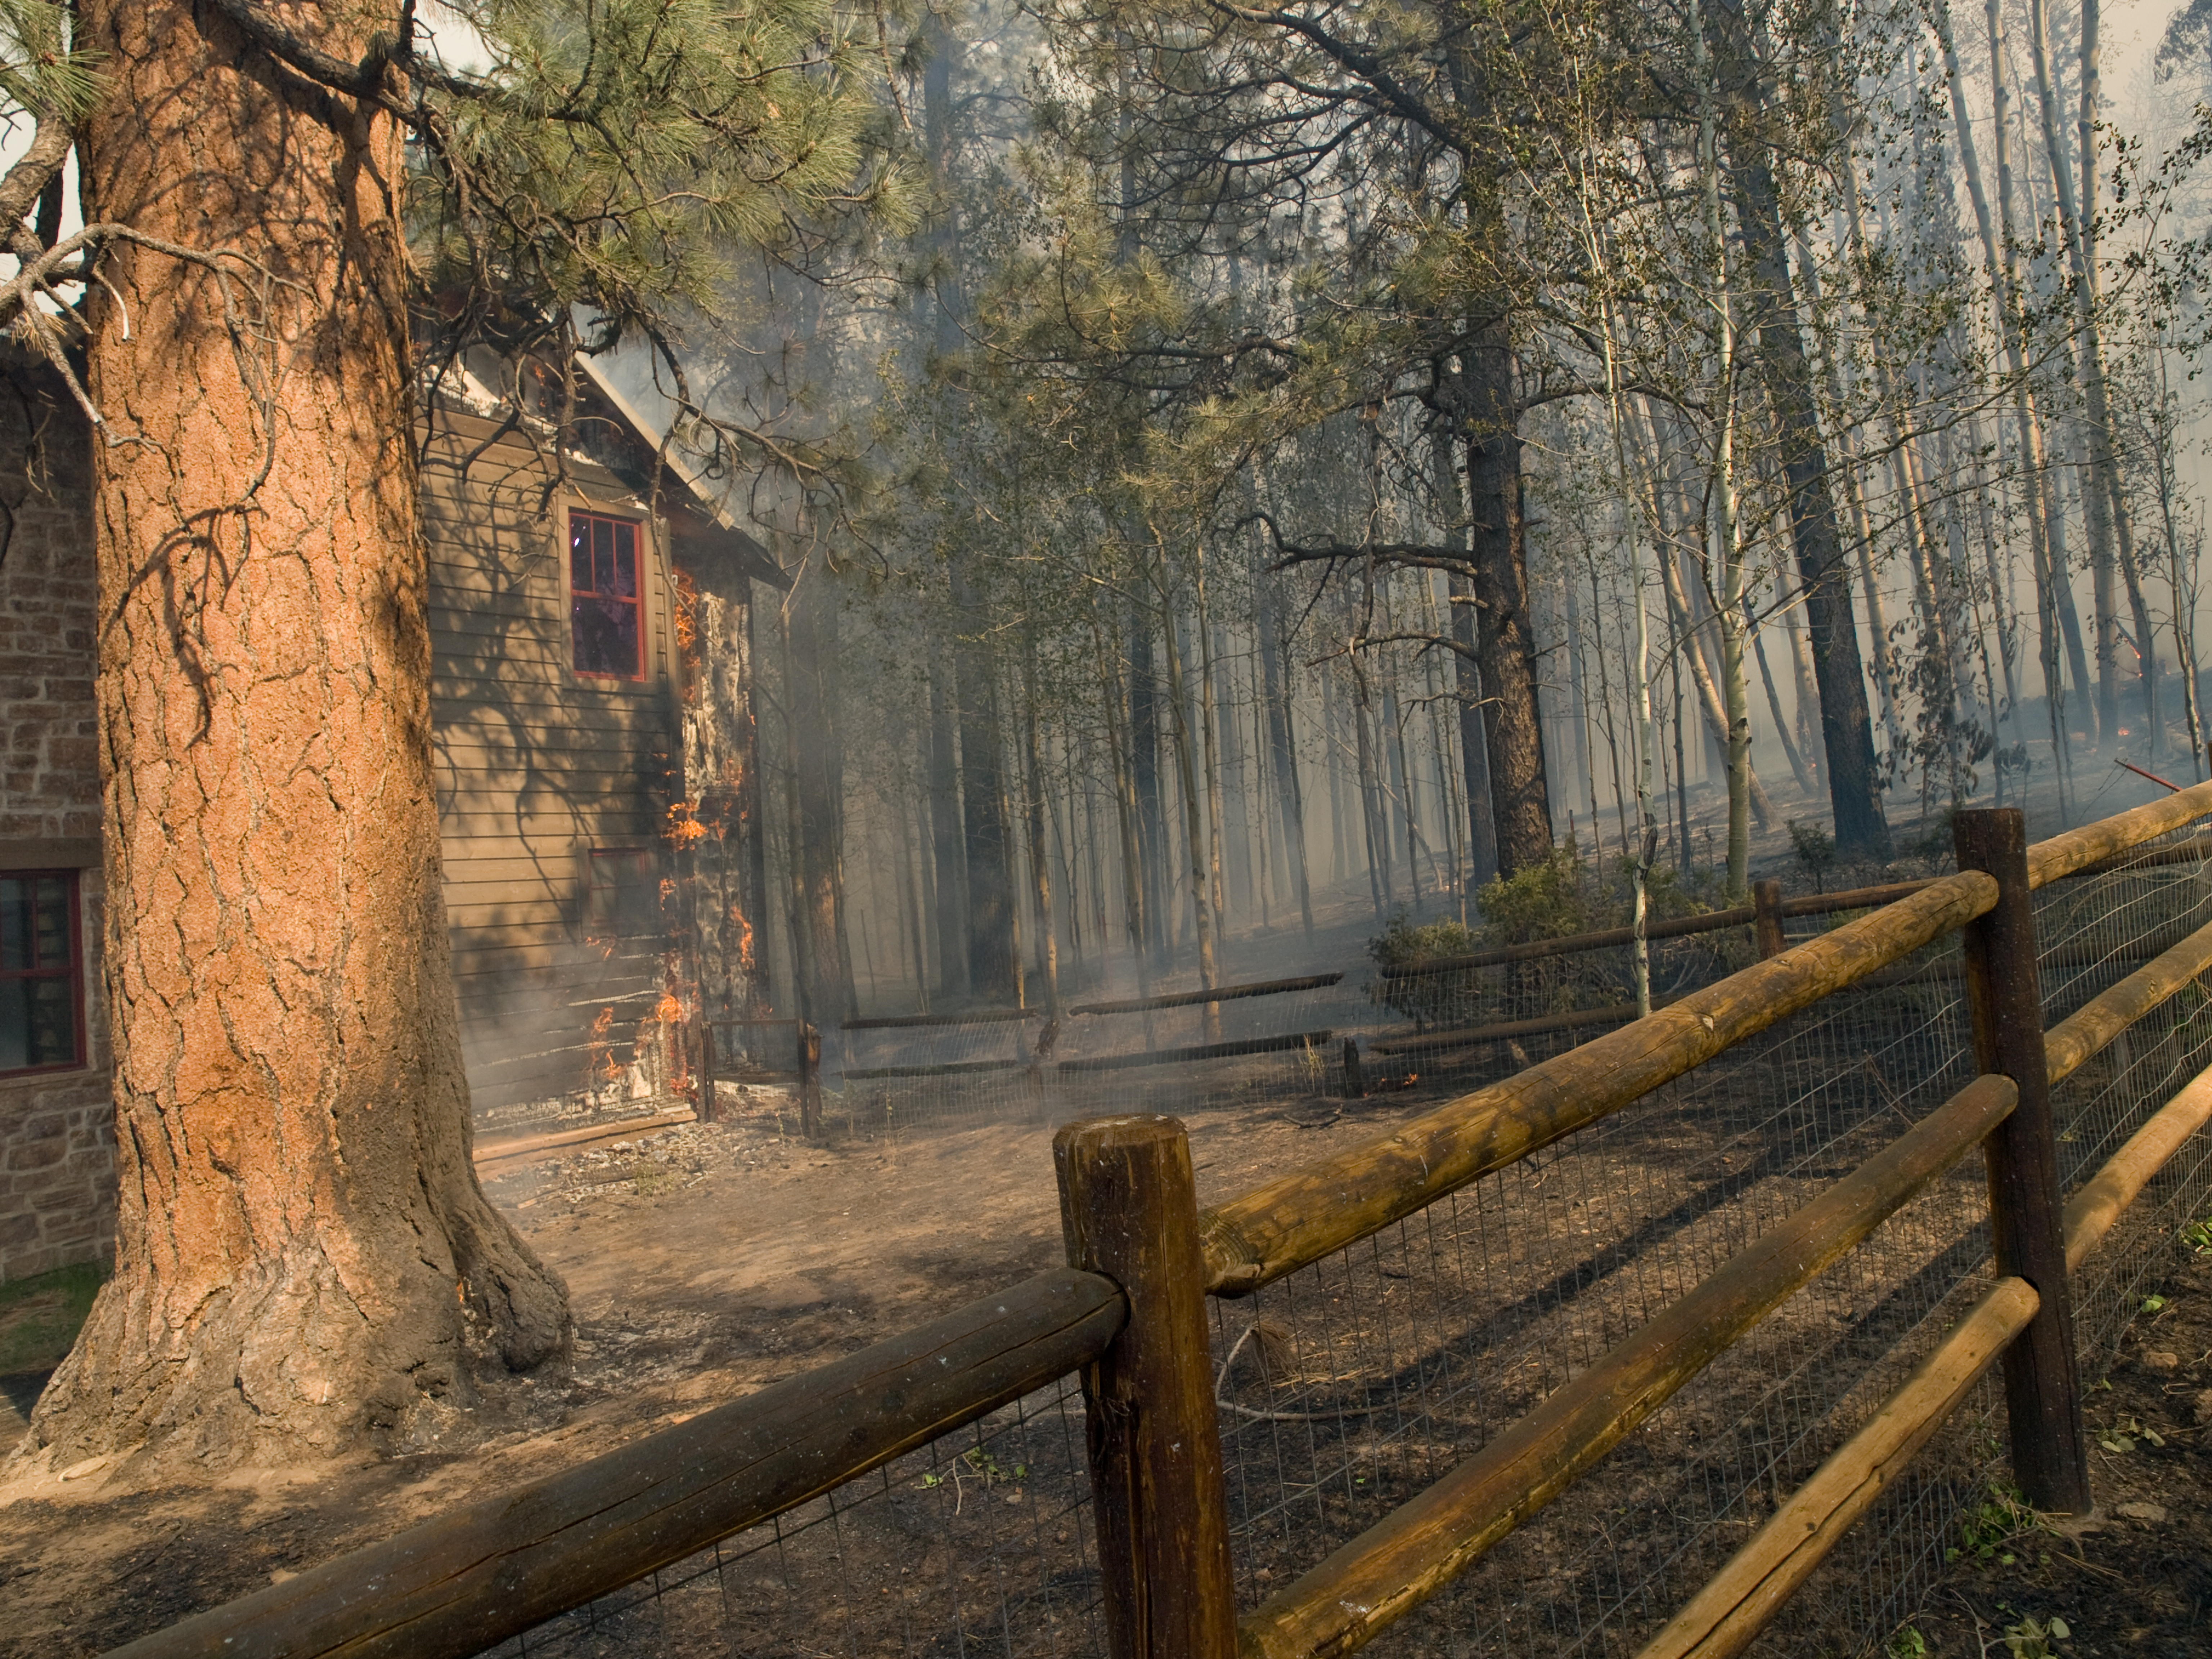 A home burns in the Wallow Fire.